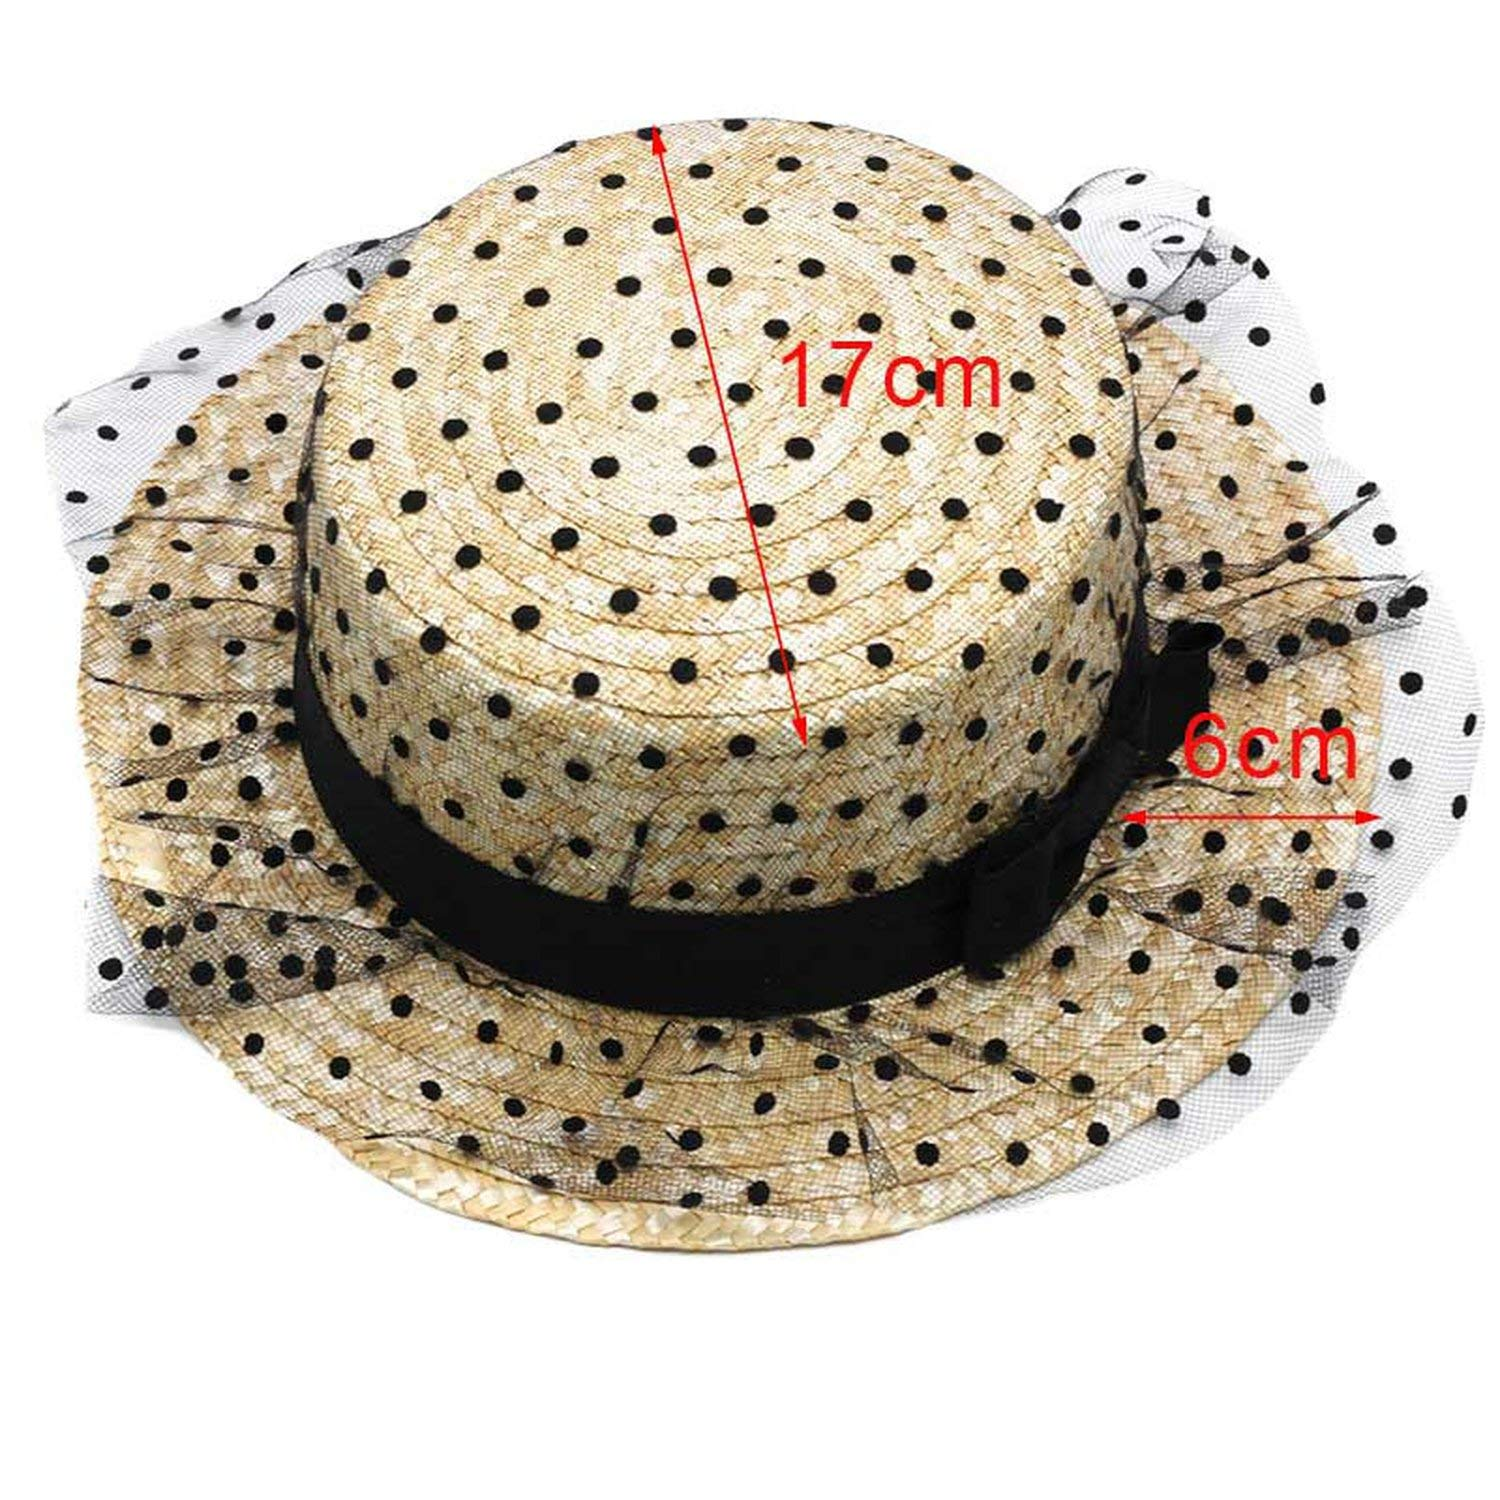 39389d8ab42a64 Get Quotations · Romantic moments Women's Beach Sun Hats Fashion Wide Lace  Mesh Dots Bow Straw 2018 Organdy Solid